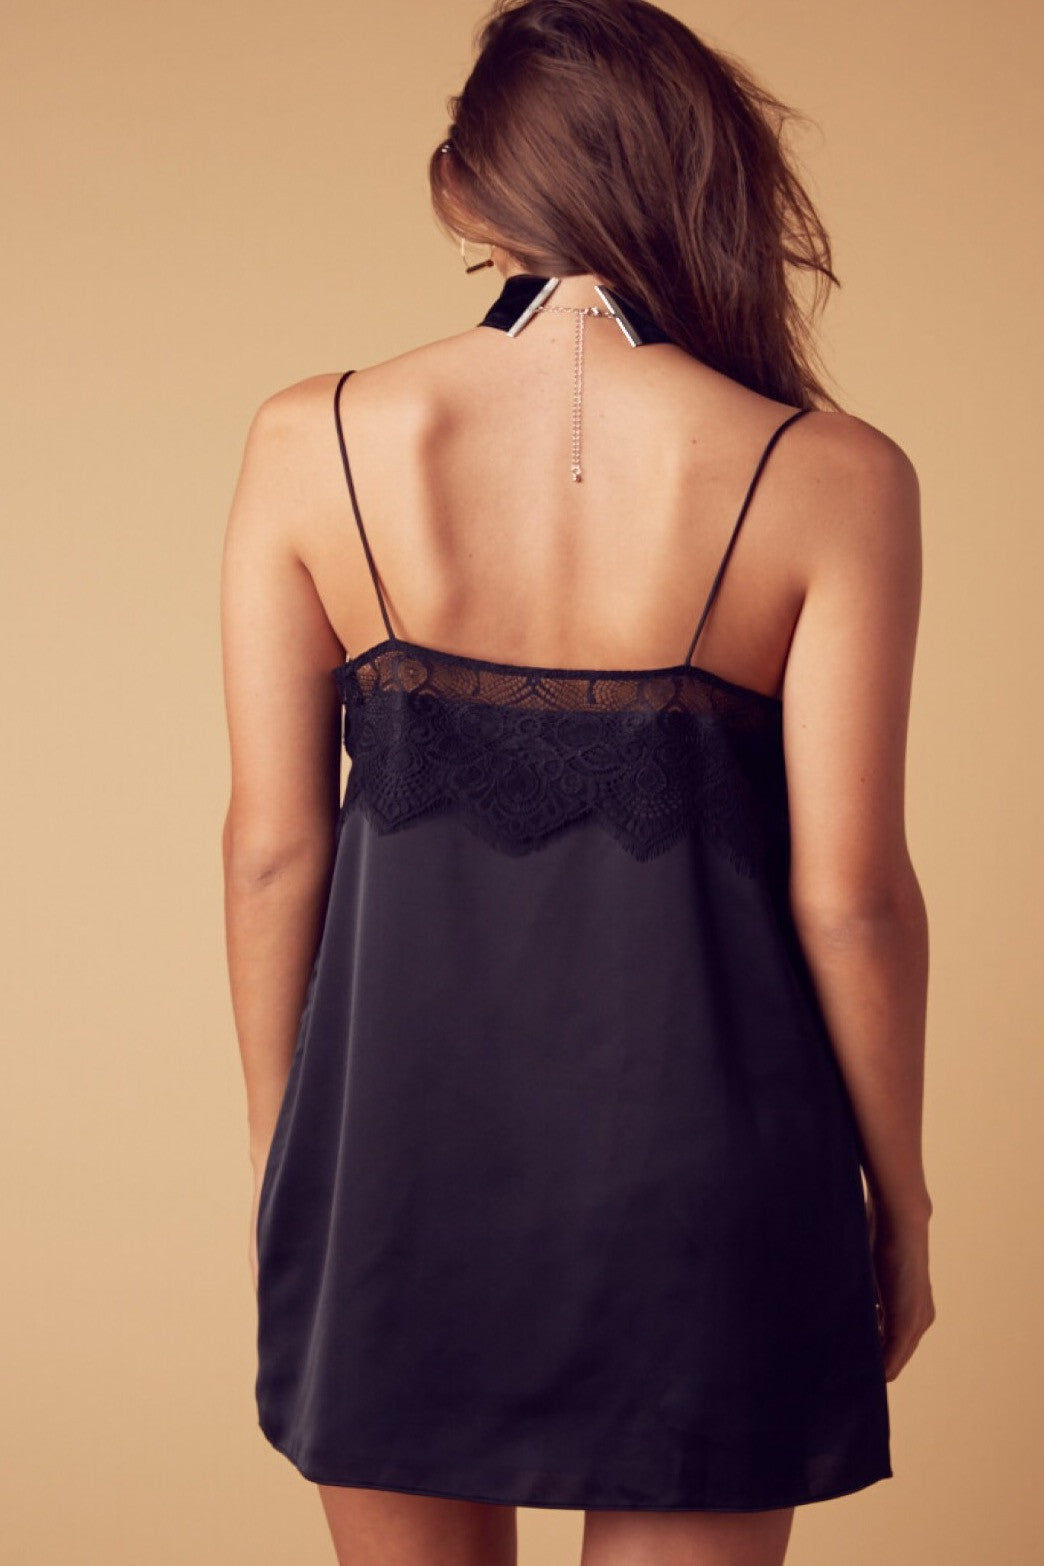 Janelle Satin and Lace Dress-Black - Hapa Clothing - 4